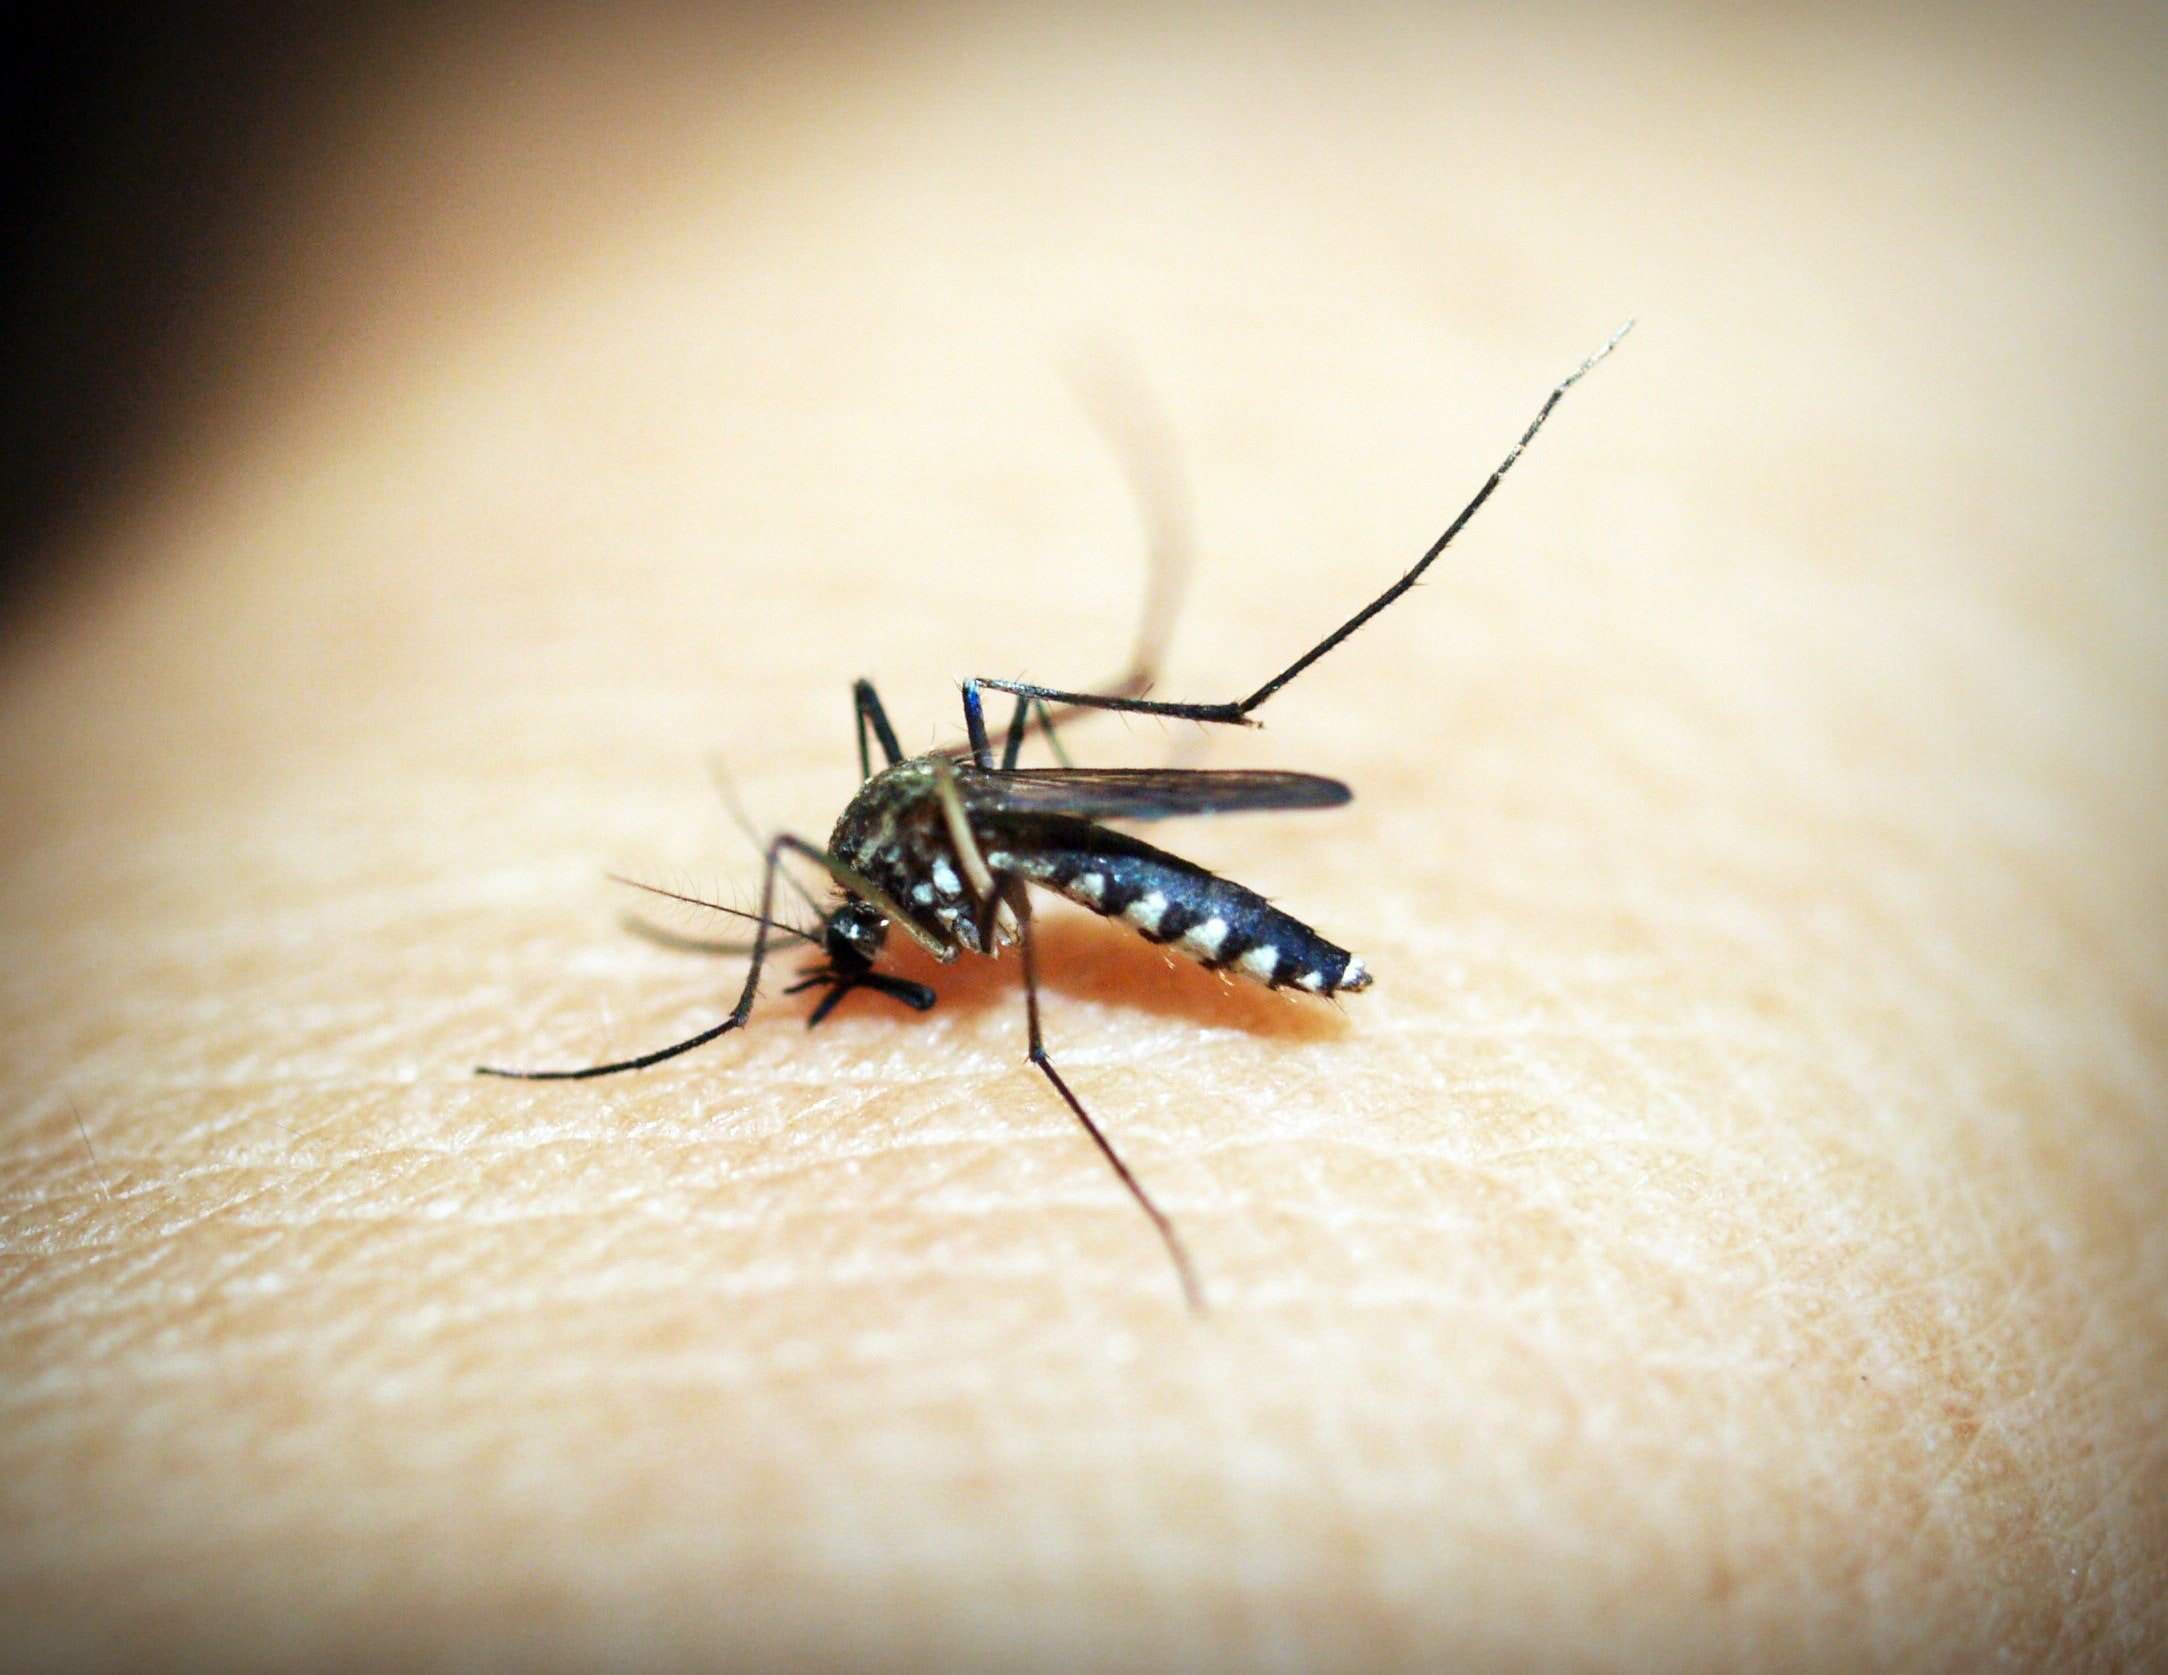 The Dreaded Mosquito